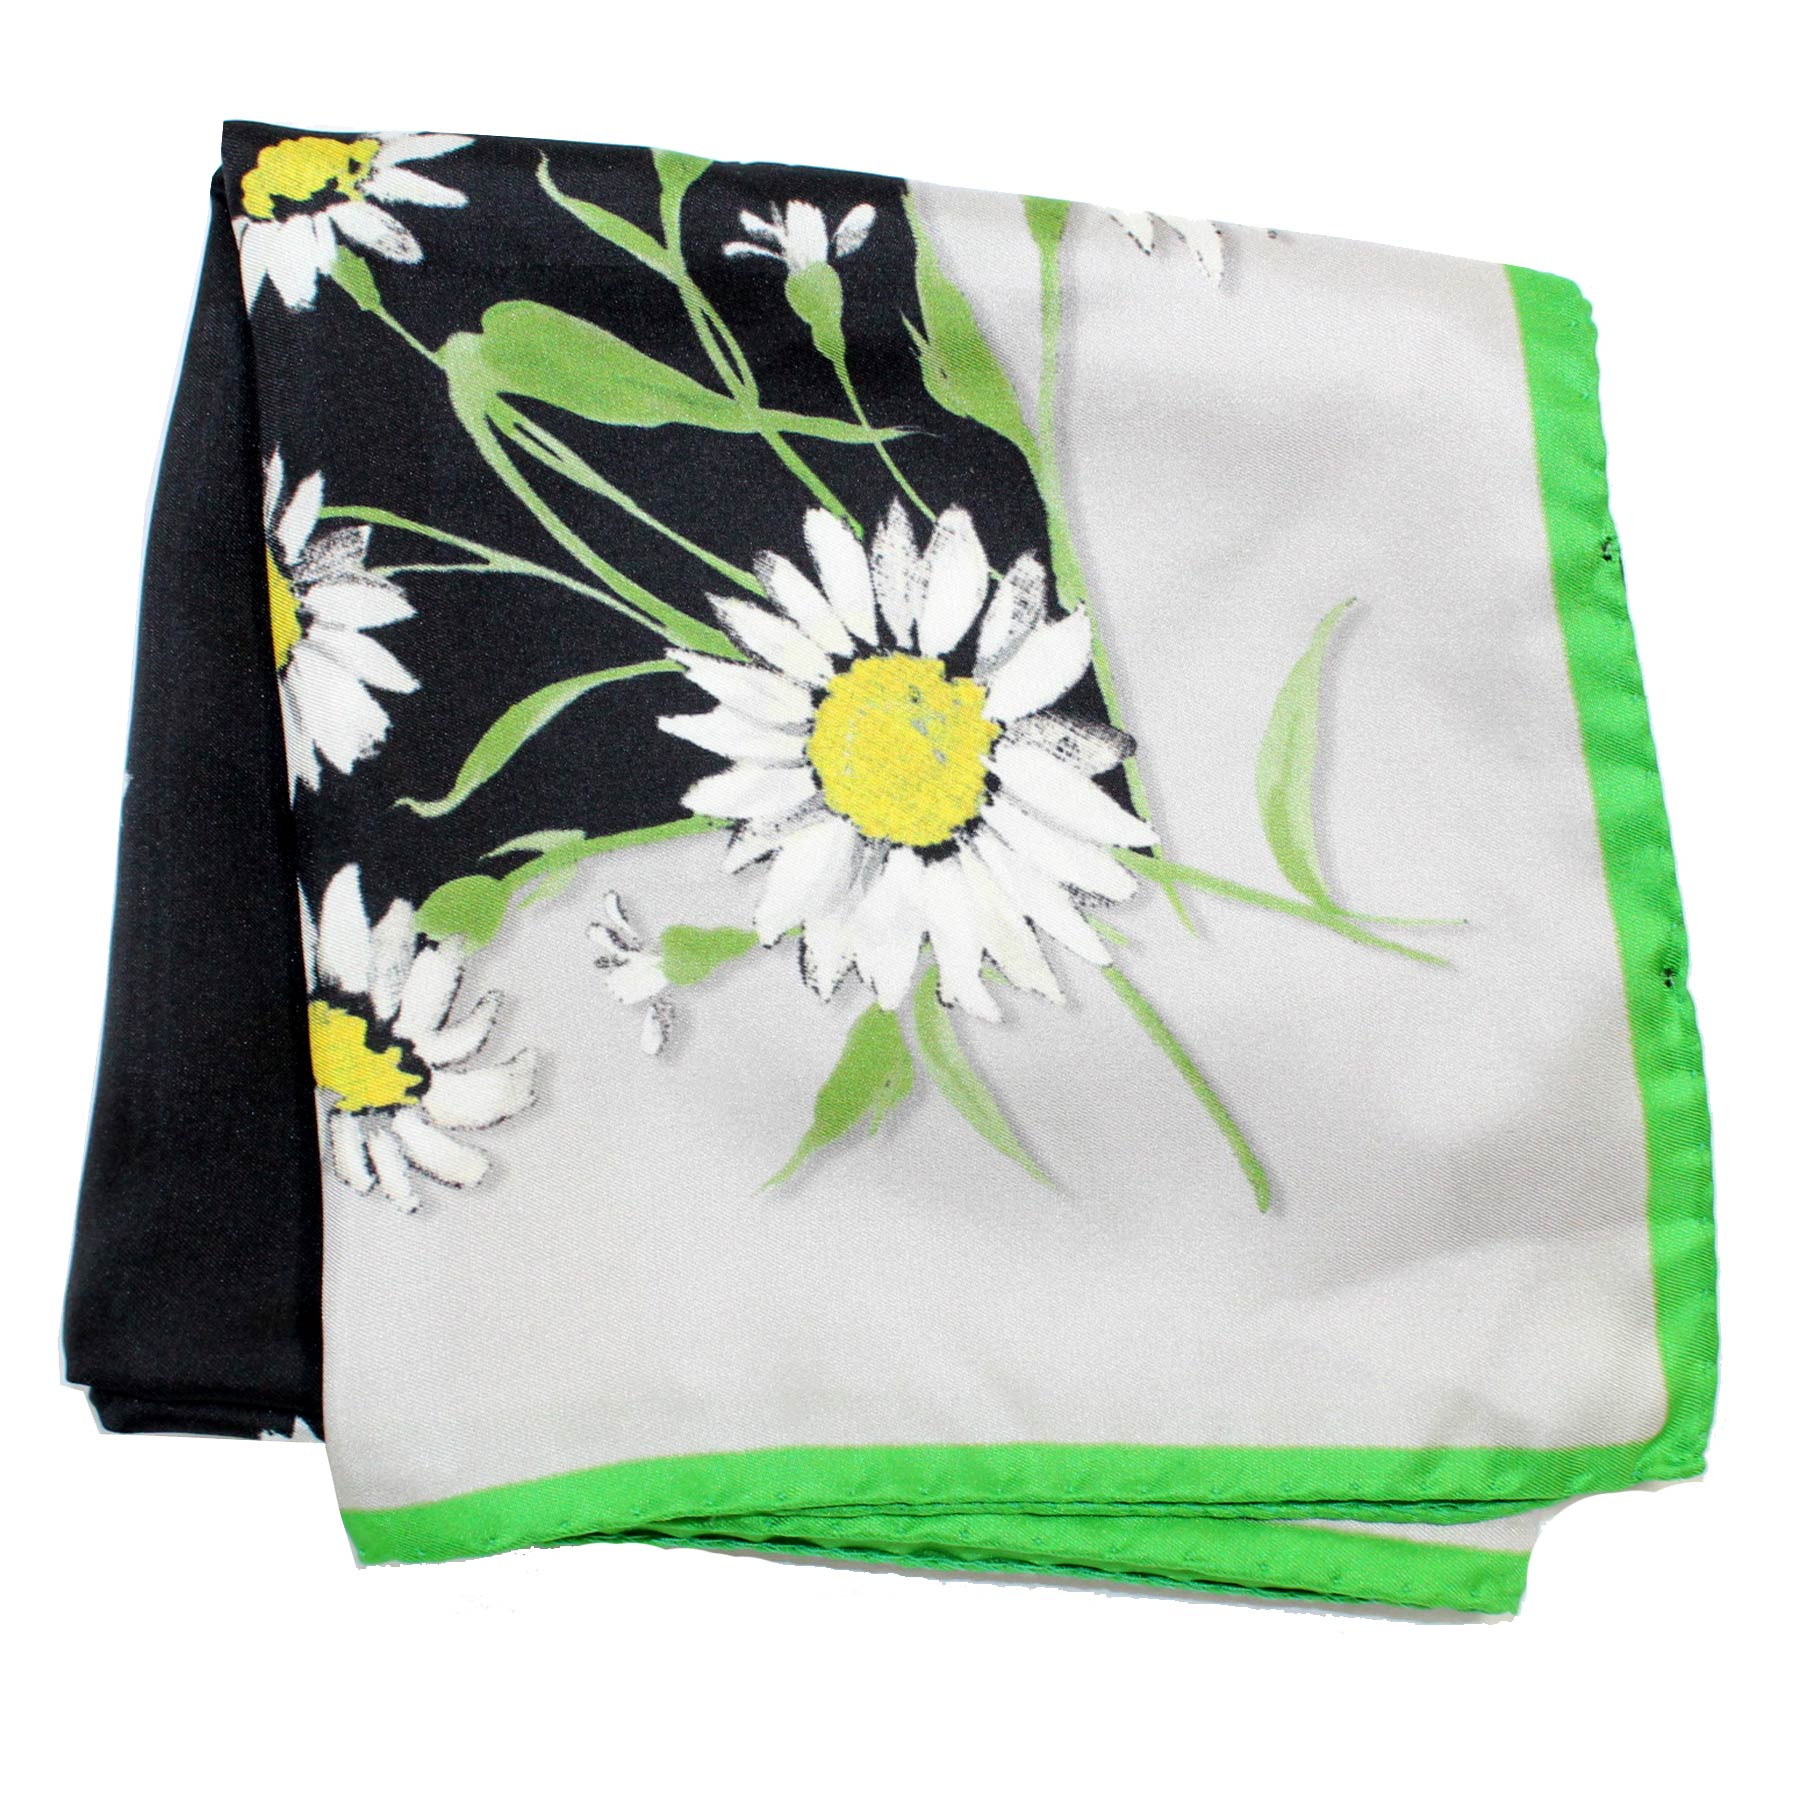 Dolce & Gabbana Scarf White Green Black Flowers